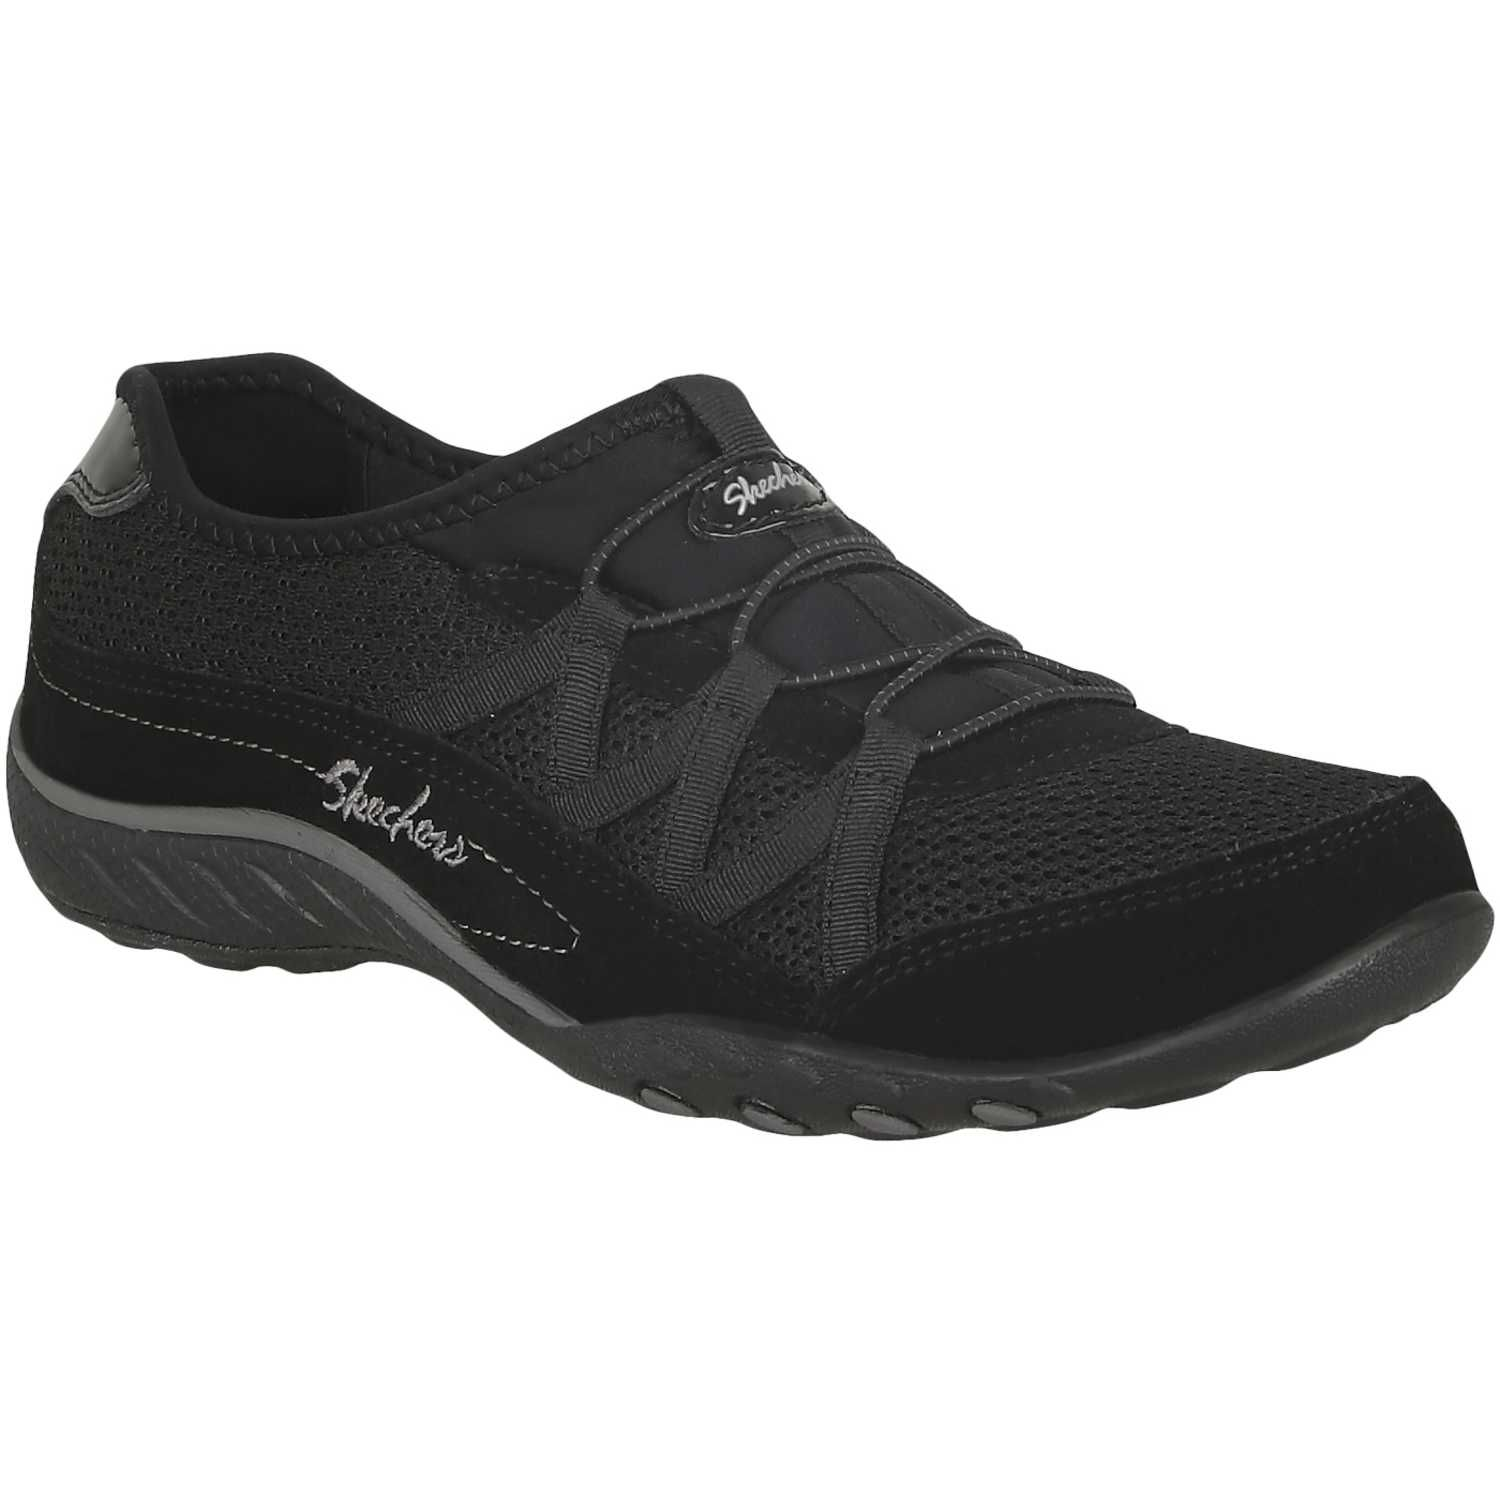 Skechers Breathe-Easy - Relaxation - Zapatillas para mujer, color negro, talla 37